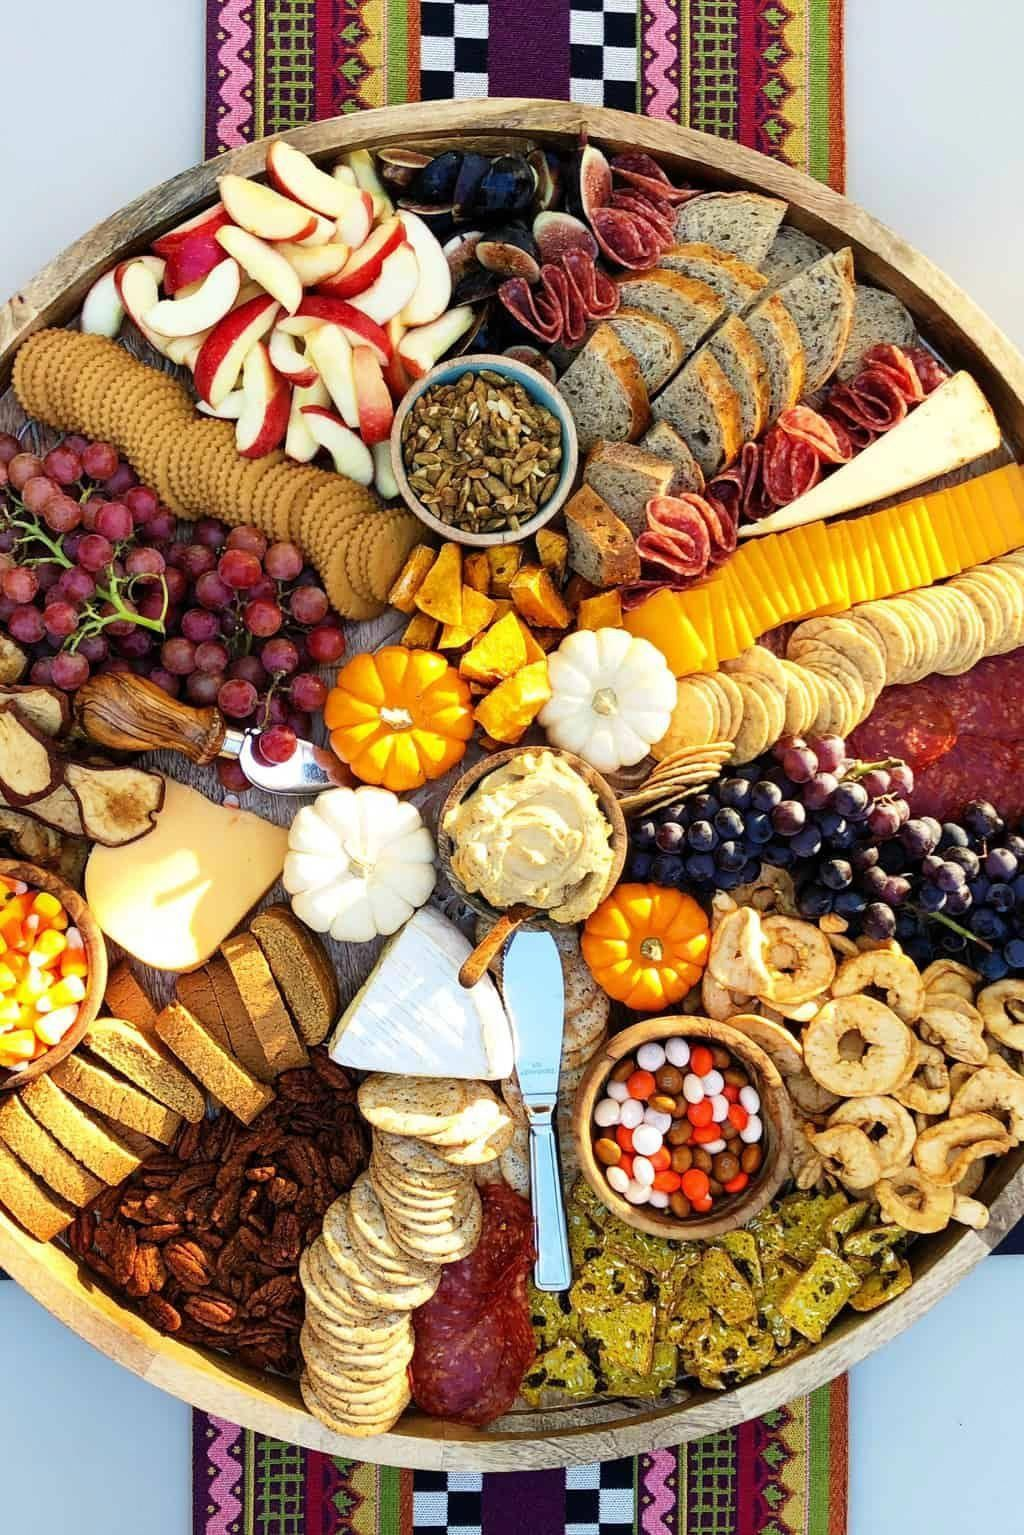 Fall Epic Charcuterie Board #plateaucharcuterieetfromage Fall Epic Charcuterie Board for casual entertaining, filled with pumpkin treats, best cheese and cured meats, with fruits, nuts, and crackers! #epic #epiccharcuterie #fallcharcuterie #charcuterieboard #partyfood #fallfood #appetizer #halloween #appetizers #plateaucharcuterieetfromage